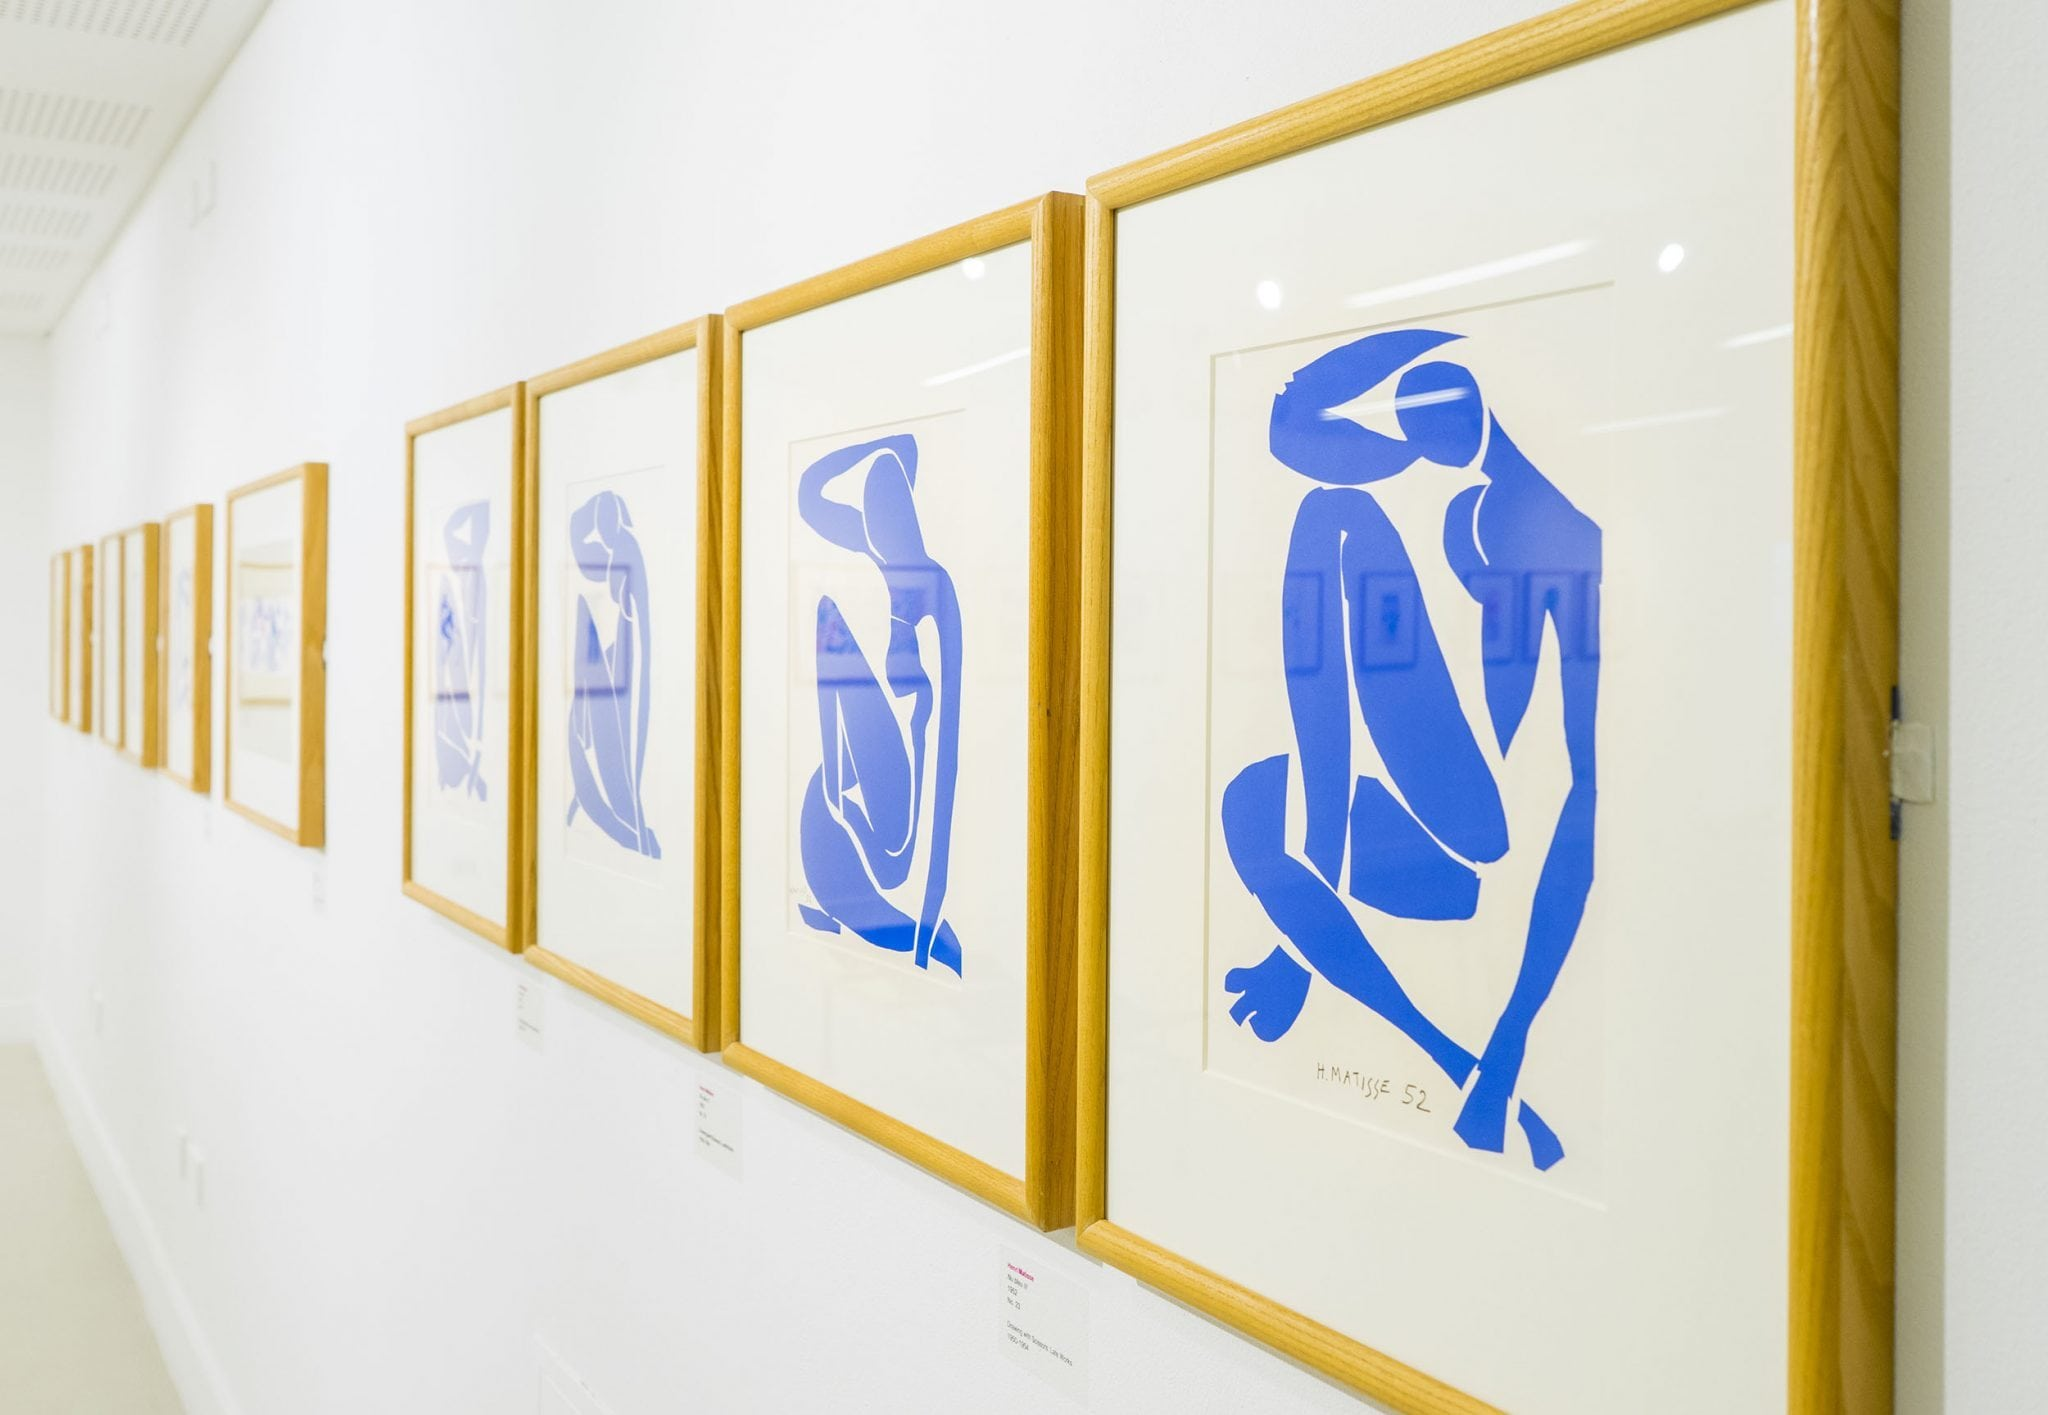 See Matisse's Drawing with Scissors cut-outs